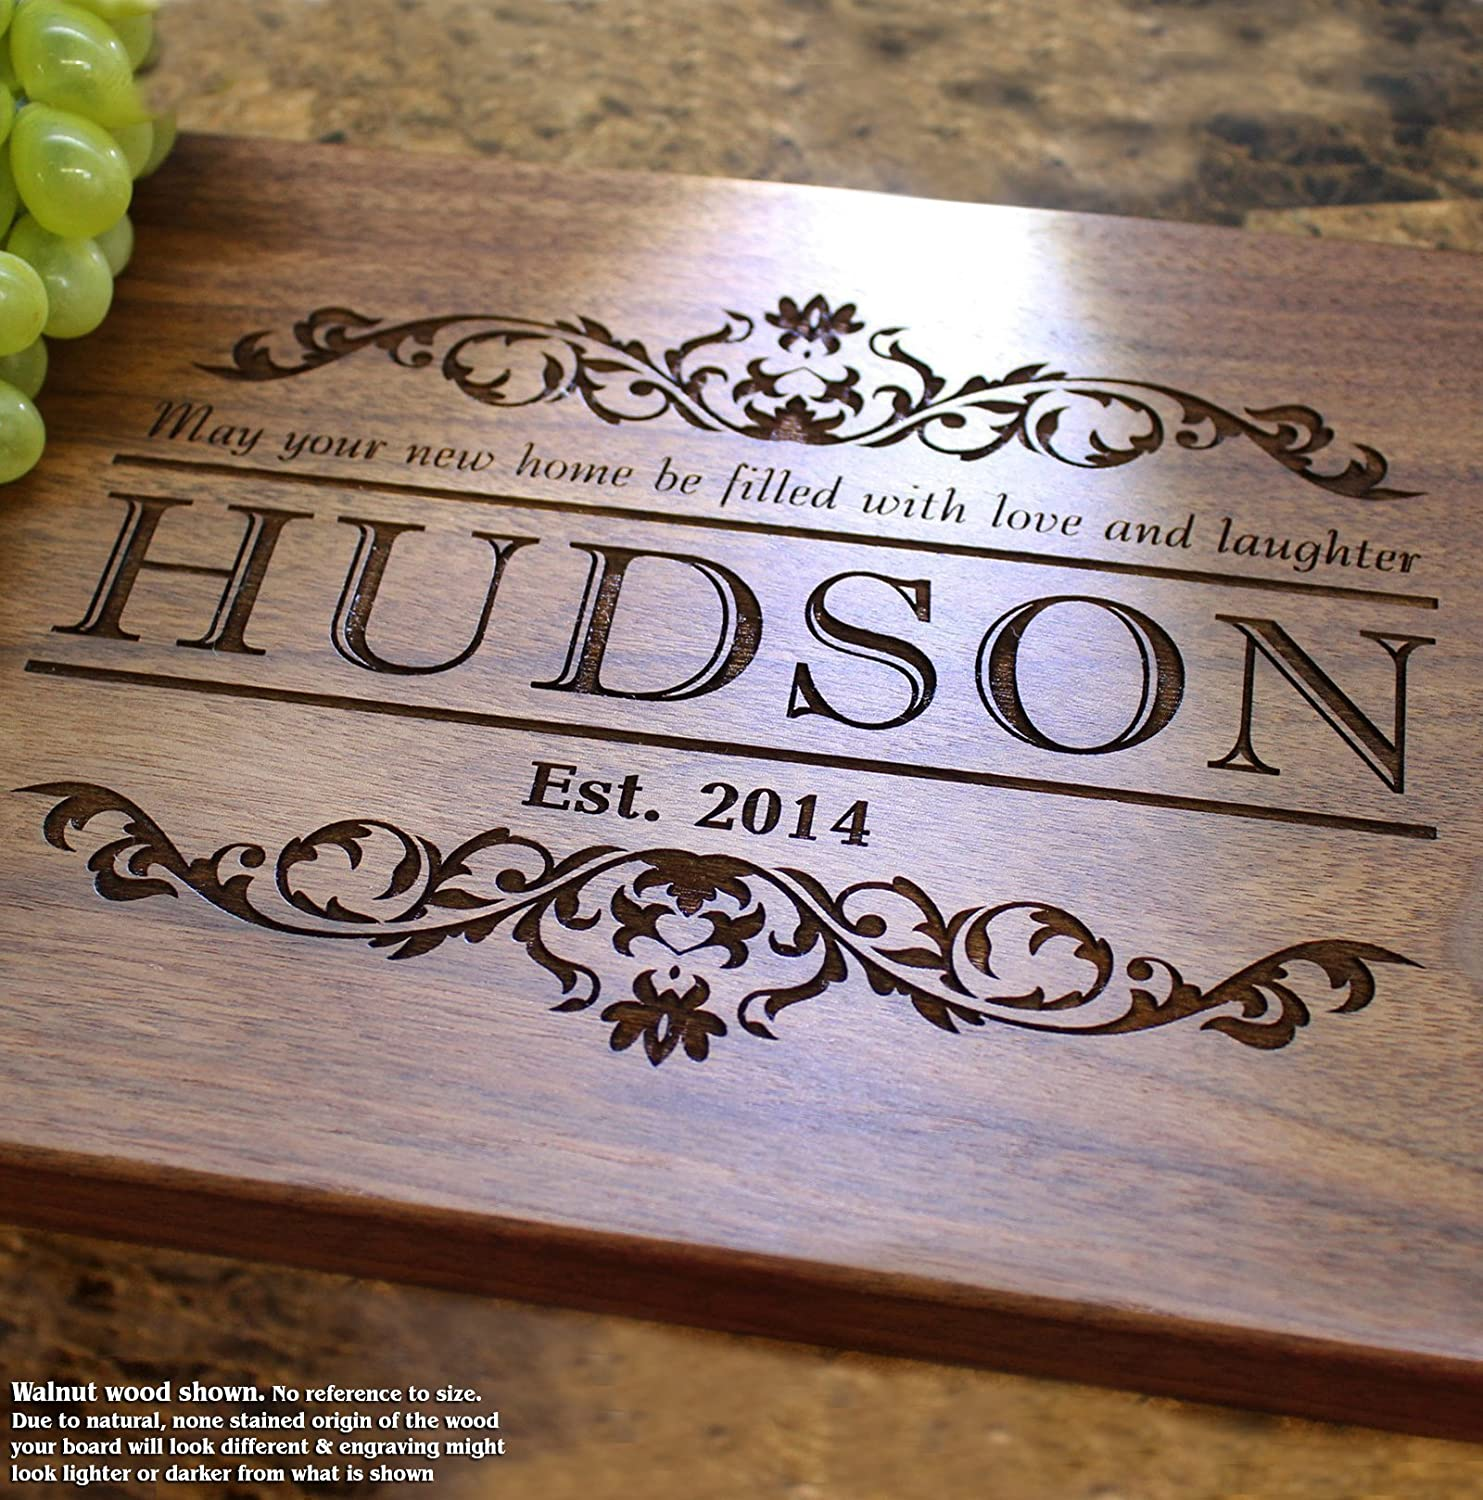 Housewarming Personalized Engraved Cutting Board- Wedding Gift, Anniversary Gifts, Housewarming Gift,Birthday Gift, Corporate Gift, Award, Promotion. #301